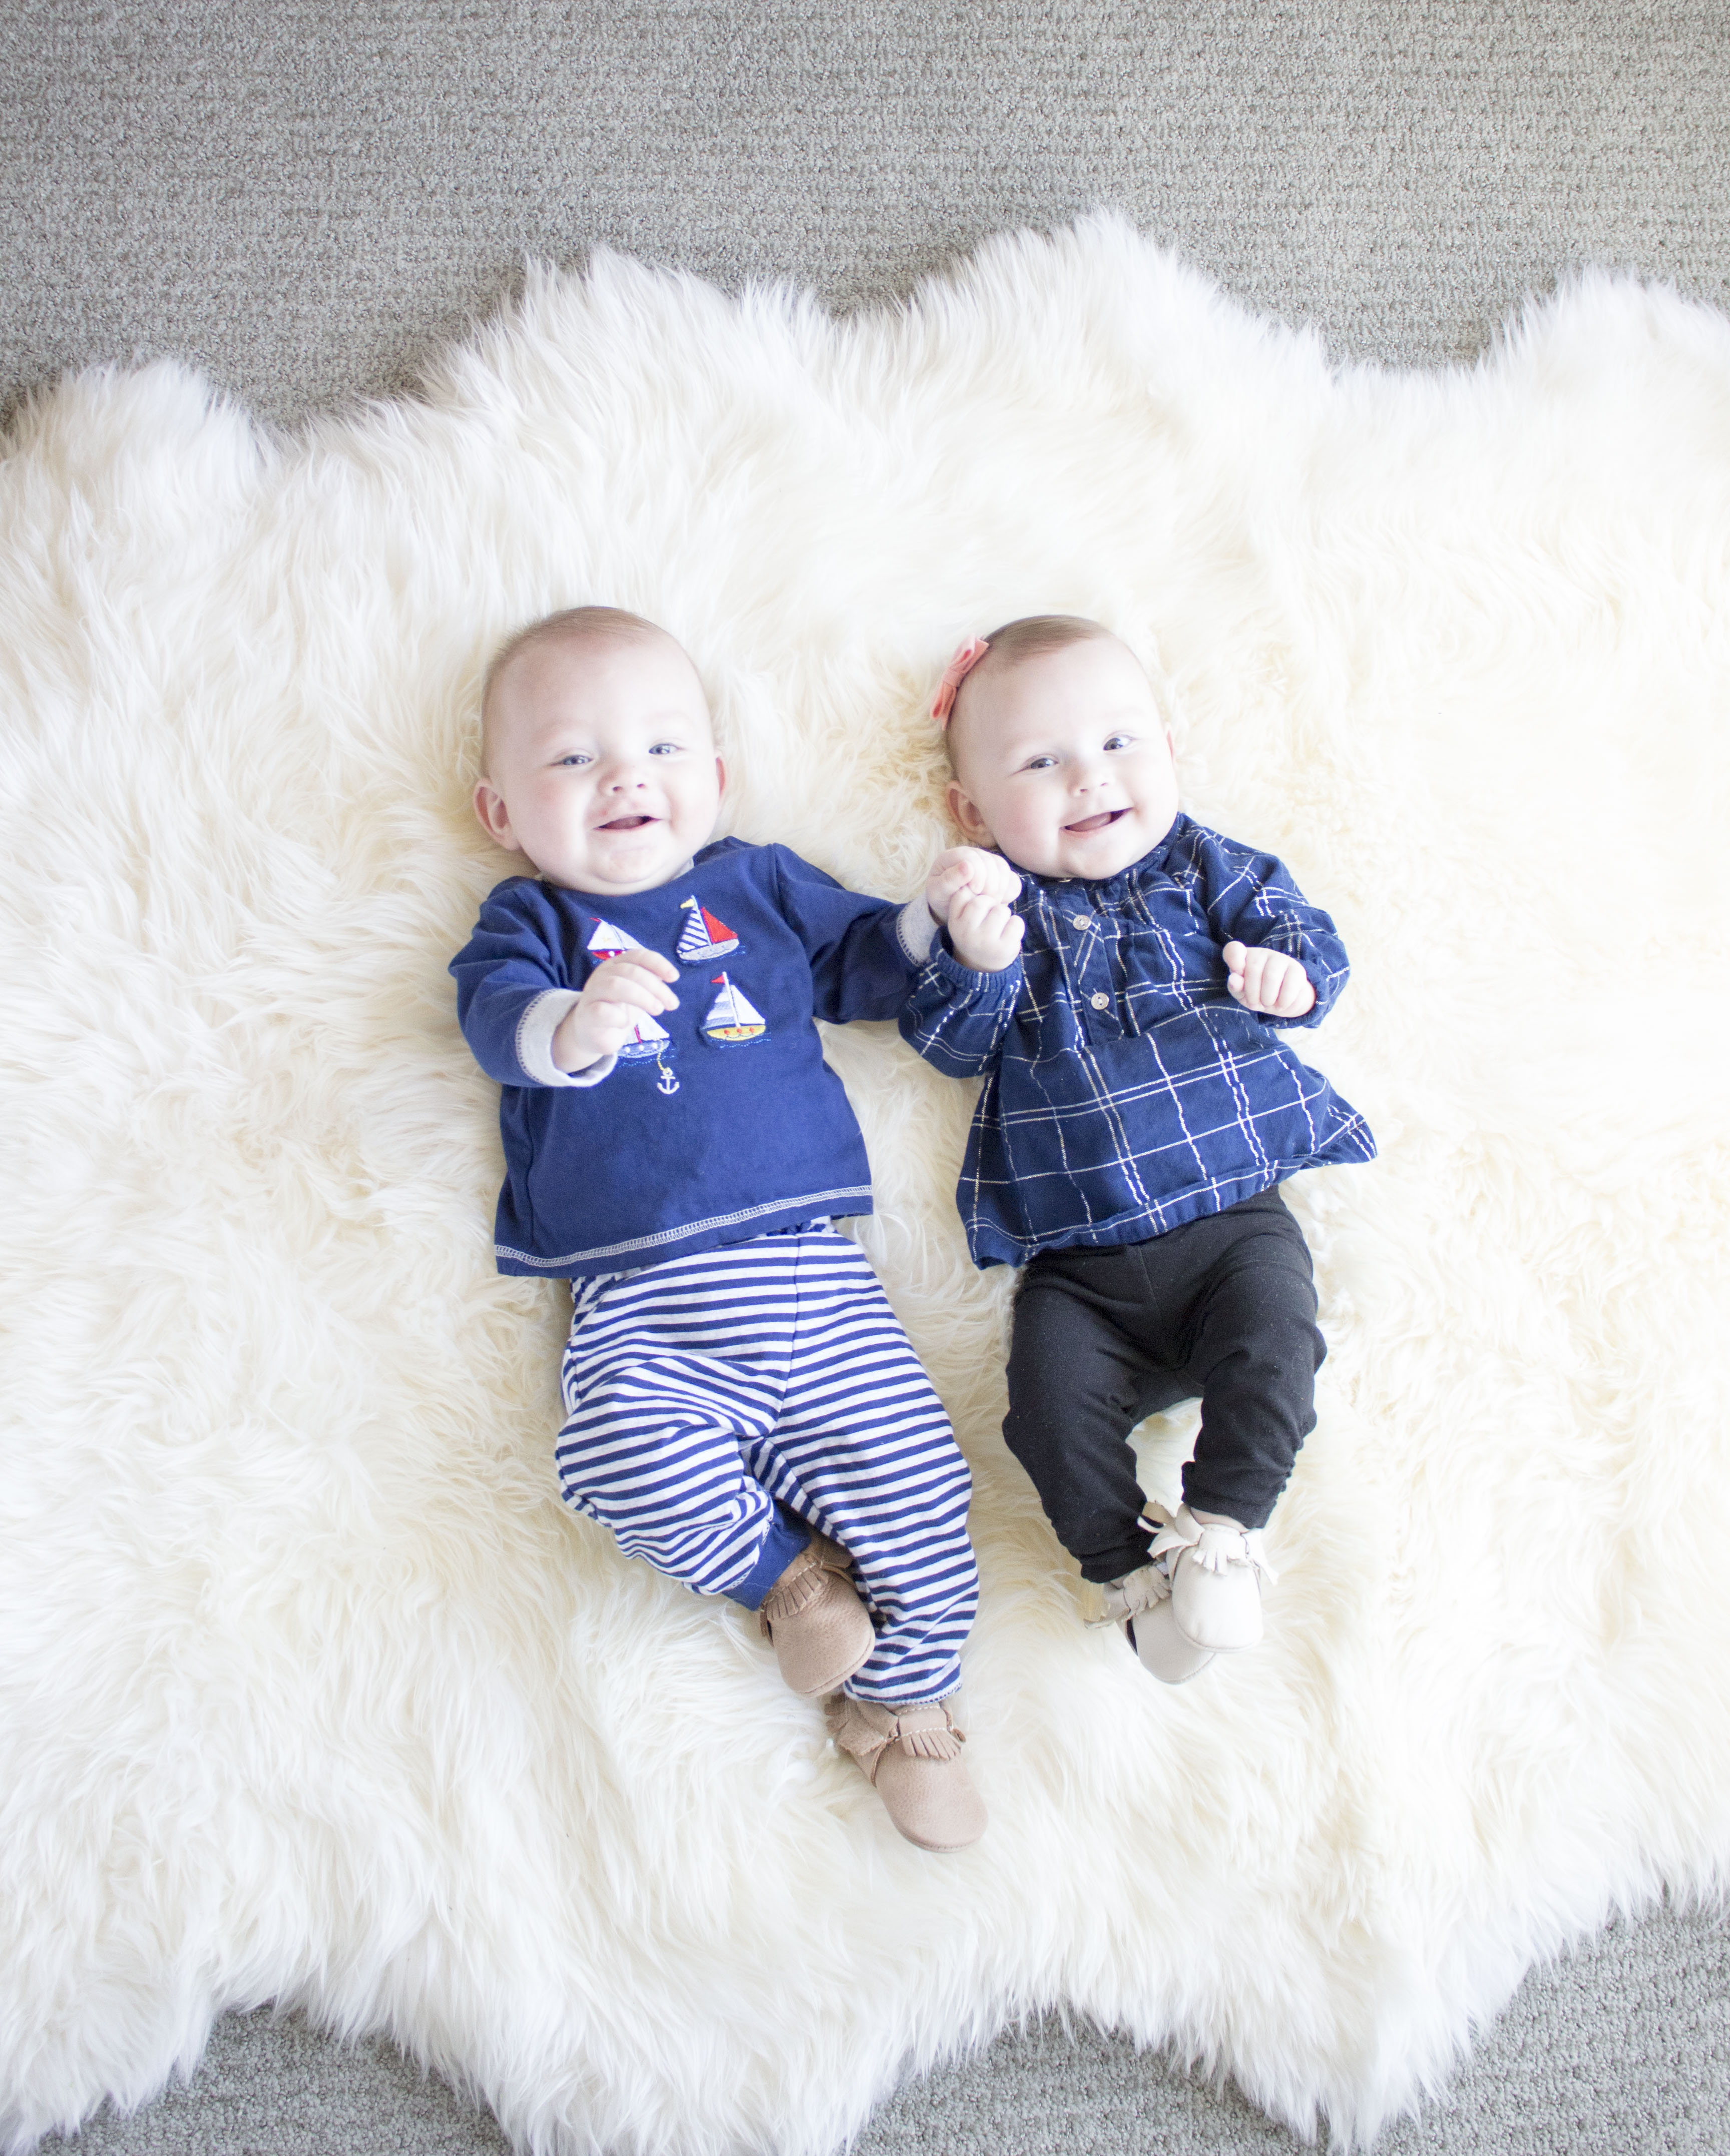 7 Month Old Twins!